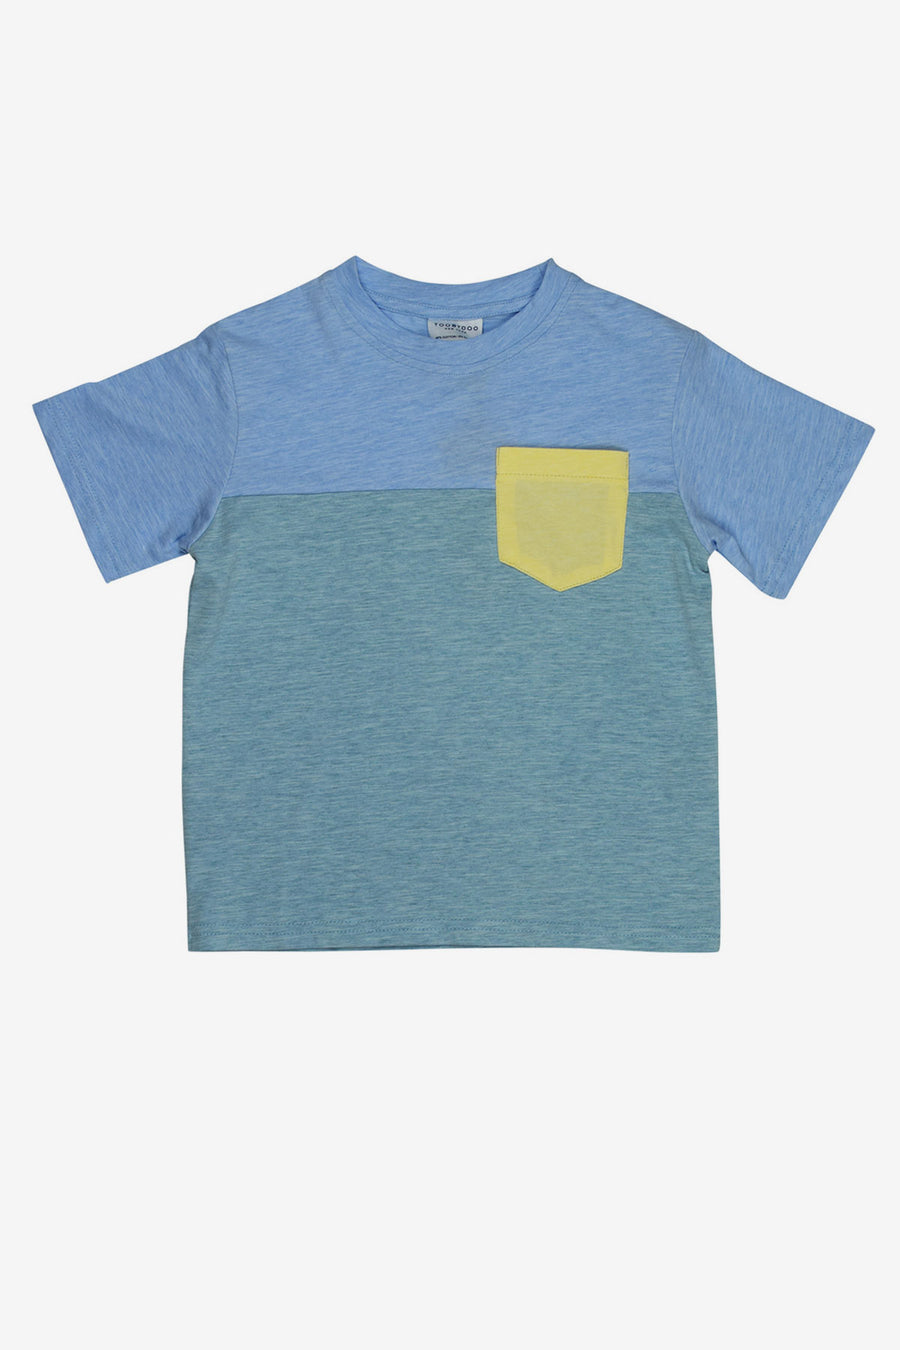 Toobydoo Color Block Tee